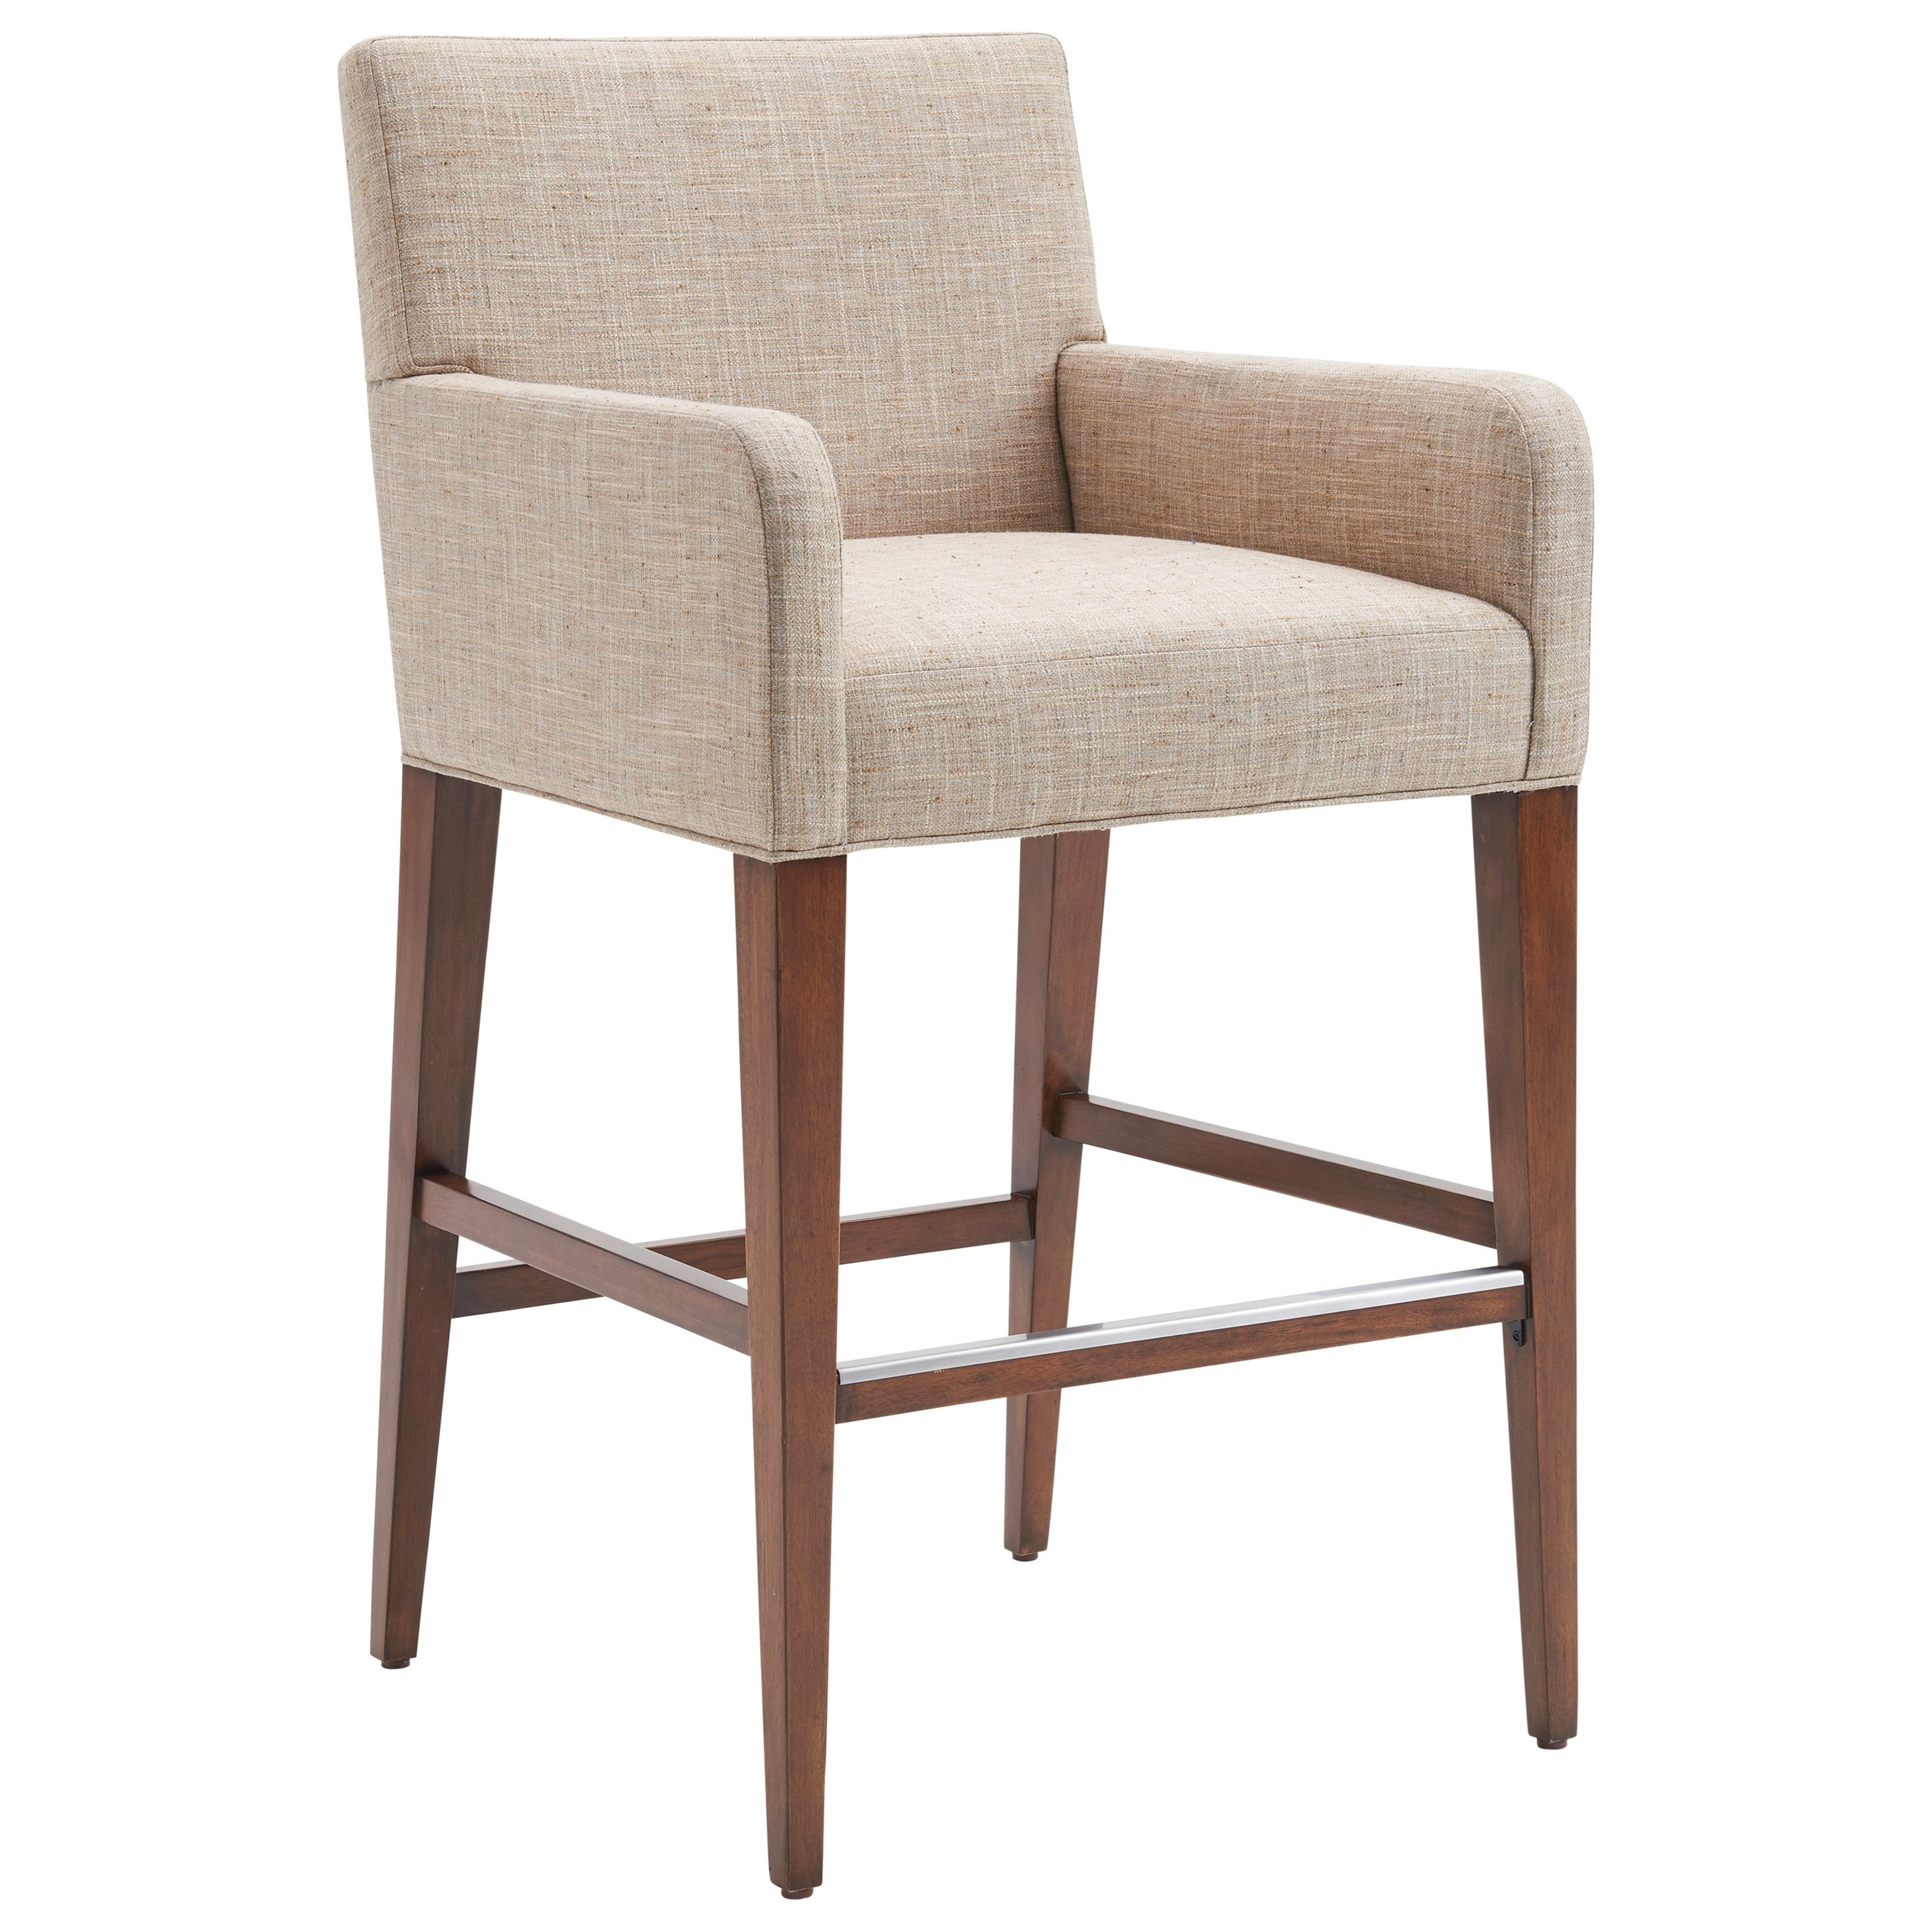 Lexington Kitano Perry Bar Stool - Item Number: 734-896-01